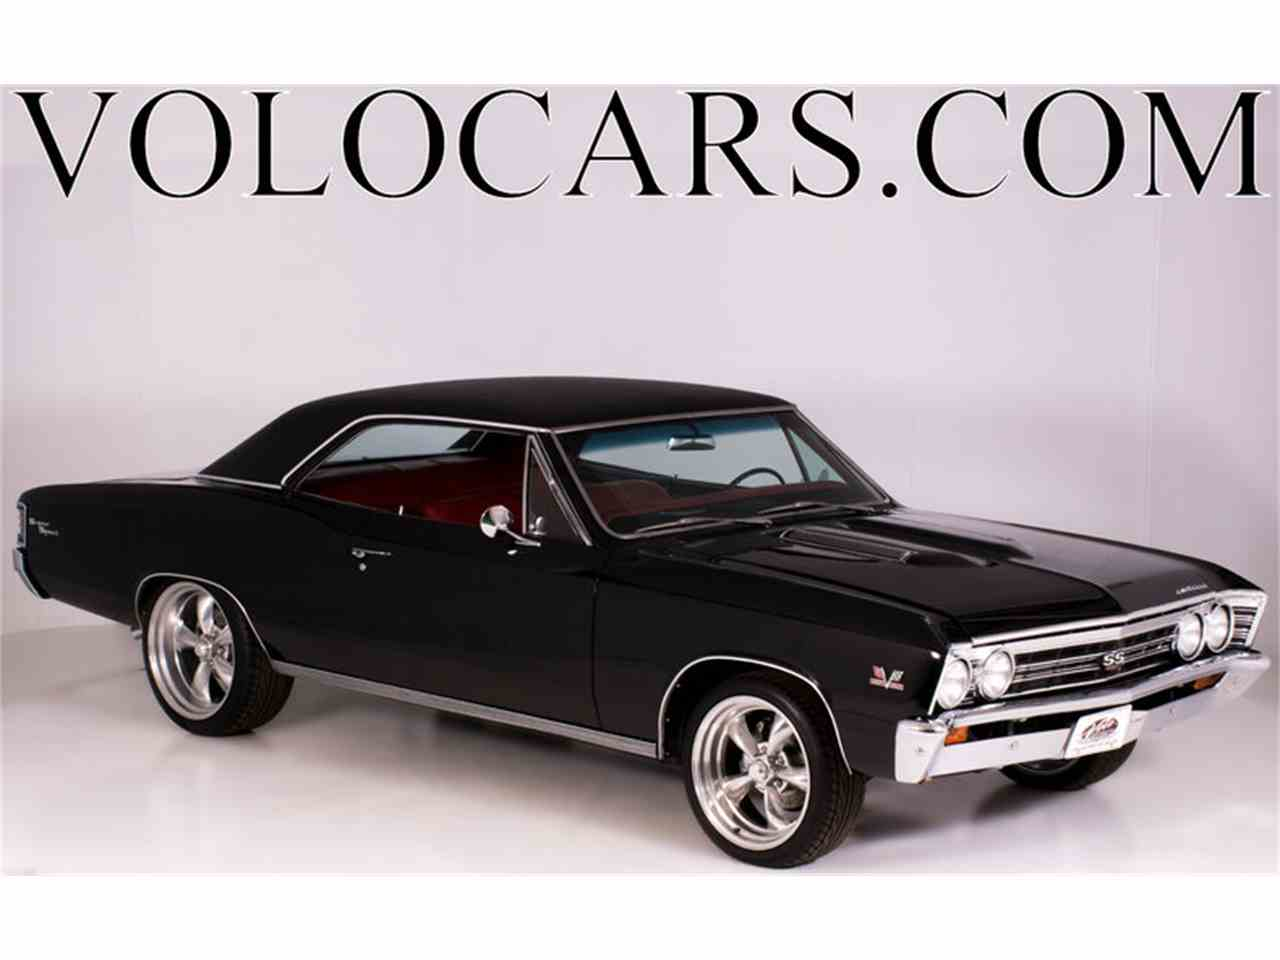 Trucks Under 5000 >> 1967 Chevrolet Chevelle SS for Sale | ClassicCars.com | CC ...